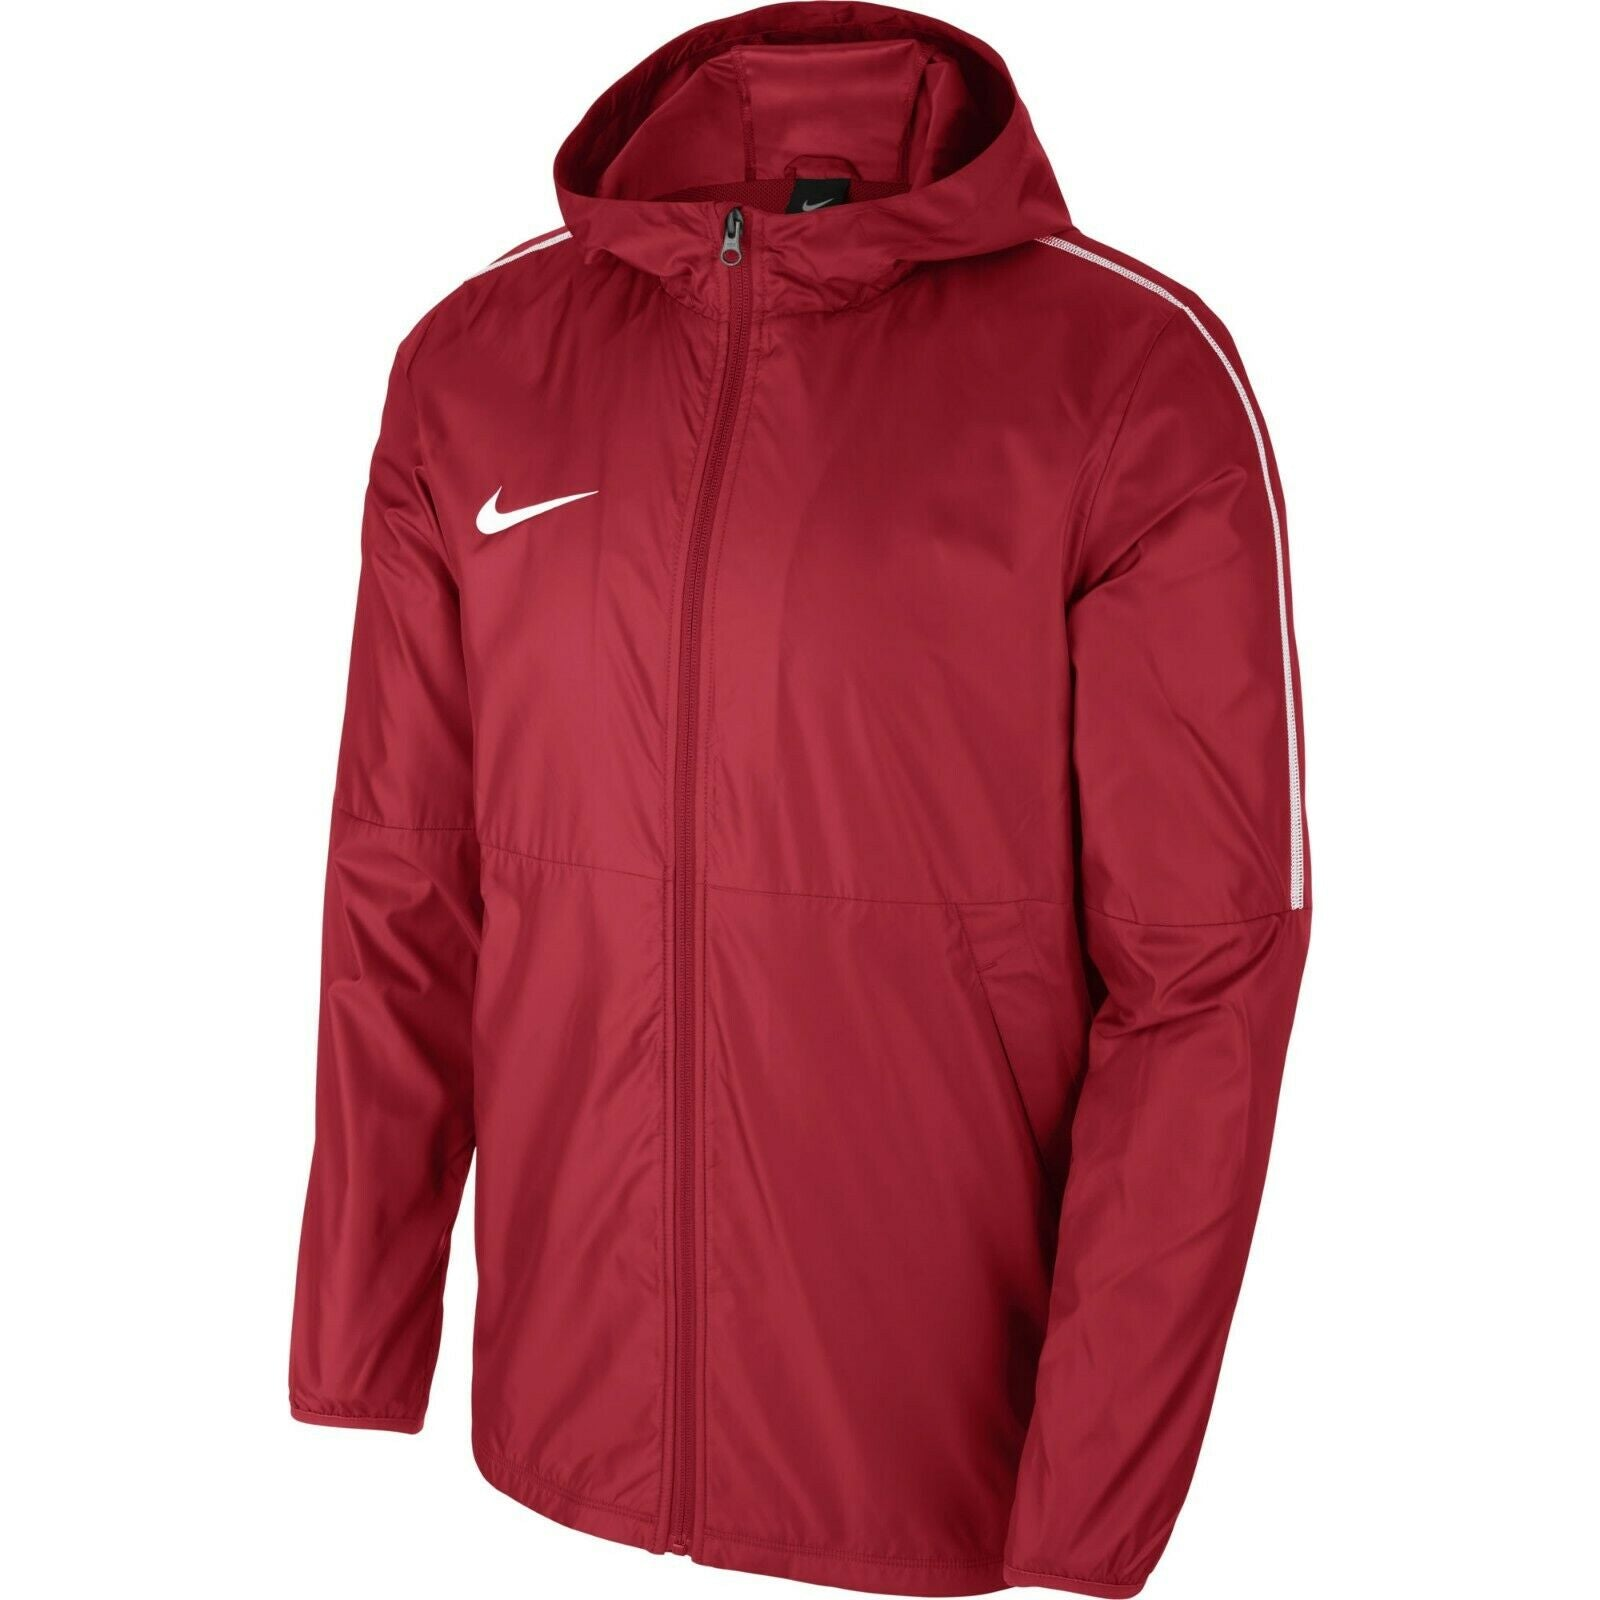 Nike Boys Park 18 Rain Jacket - Valley Sports UK